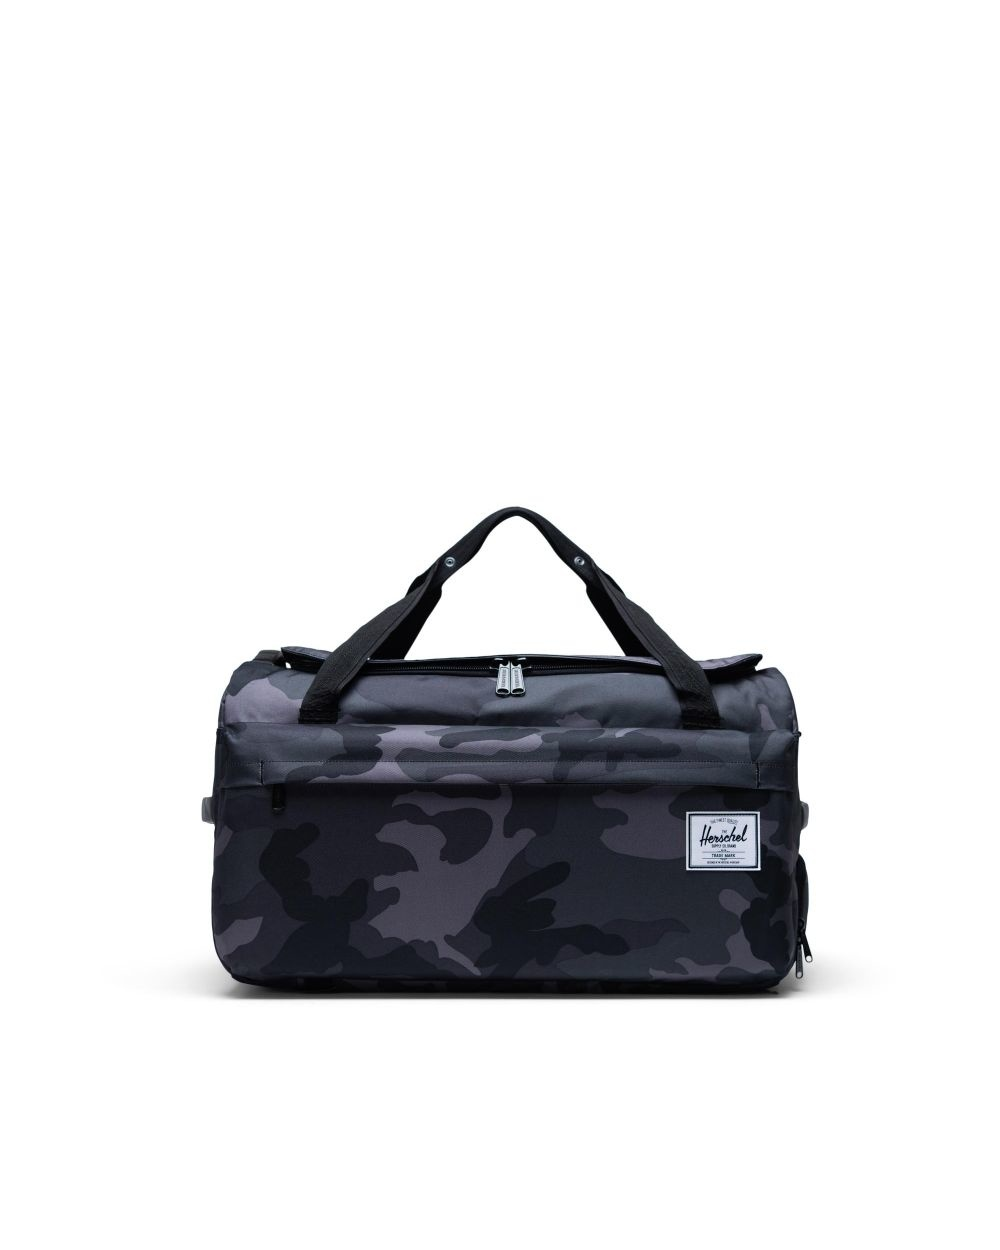 OUTFITTER LUGGAGE 50L-1